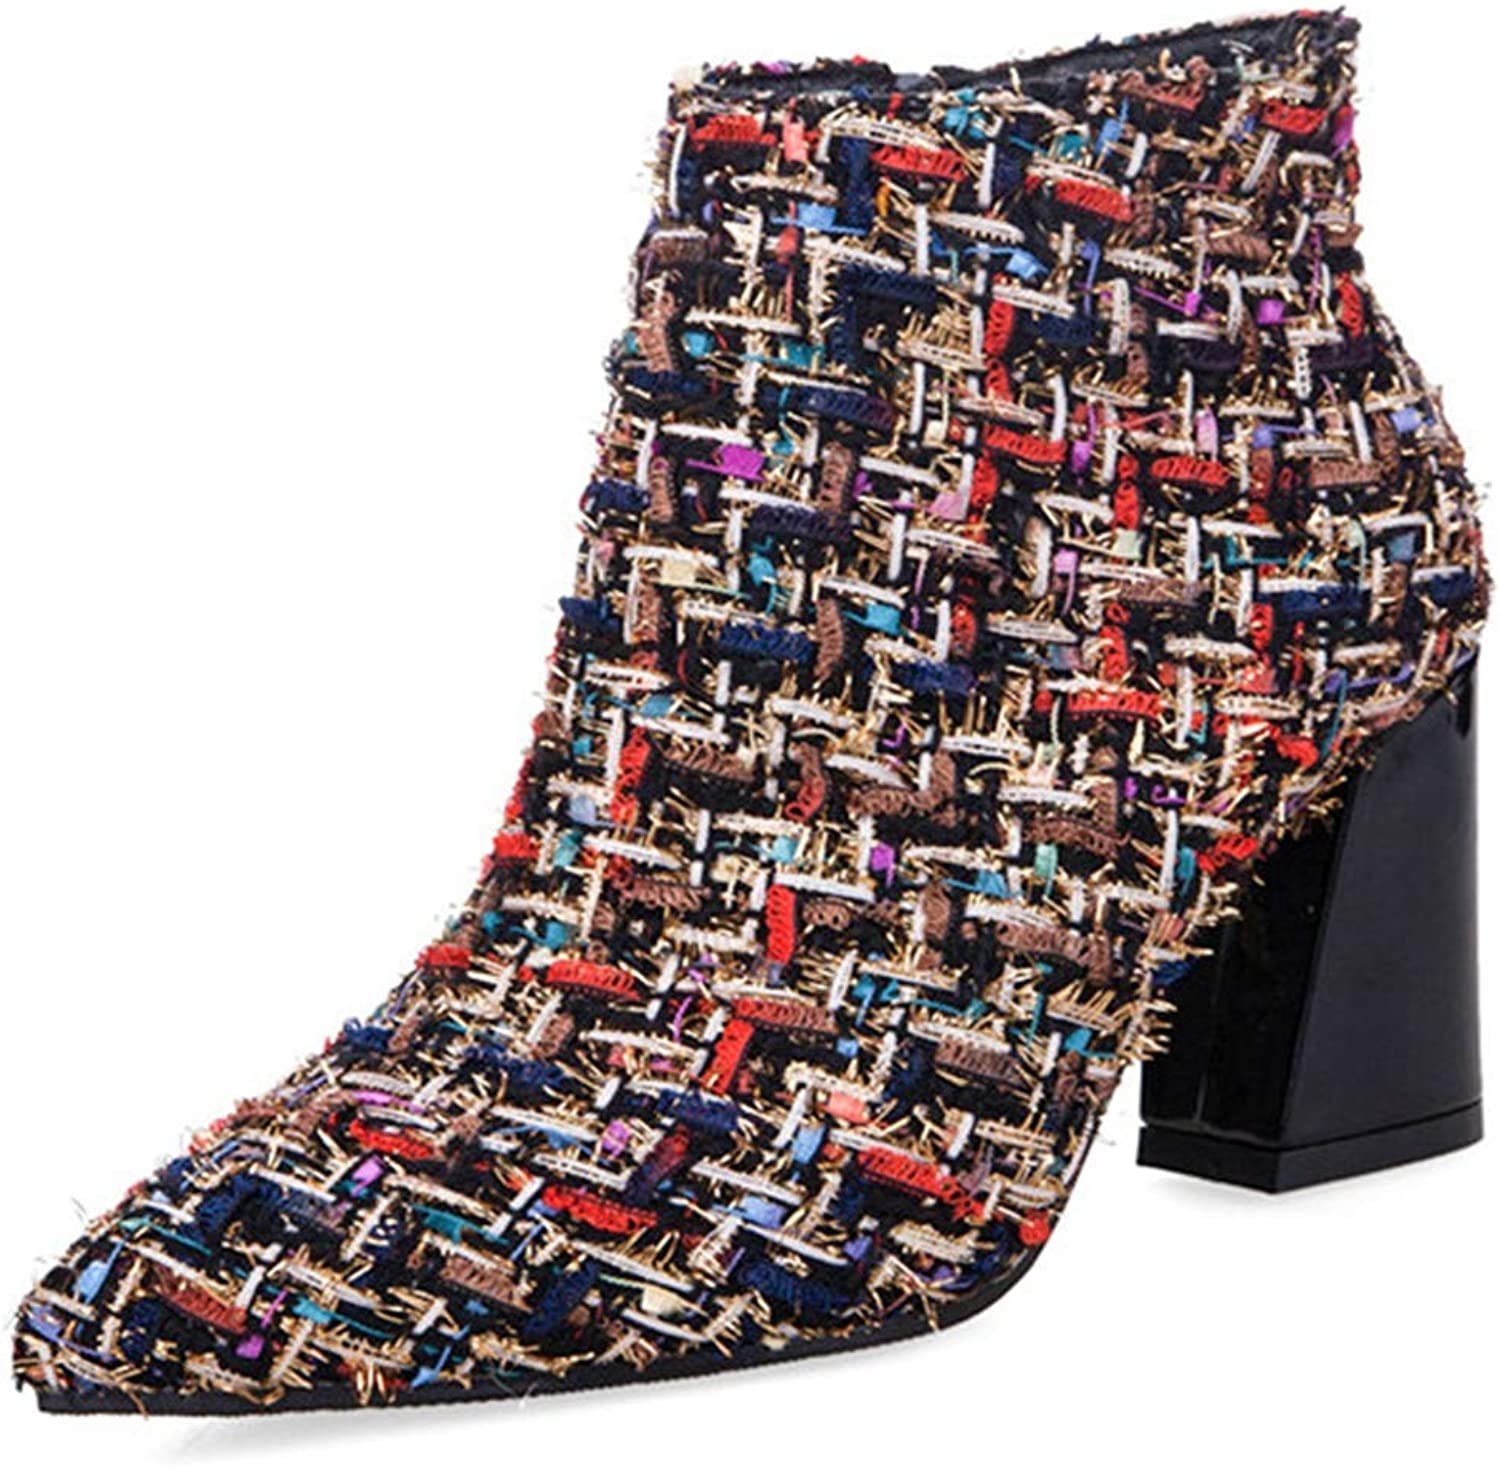 Women Ankle Boots Blends Plaid Zipper Pointed Toe High Chunky Heel Ladies Sexy Fashion Party Short shoes